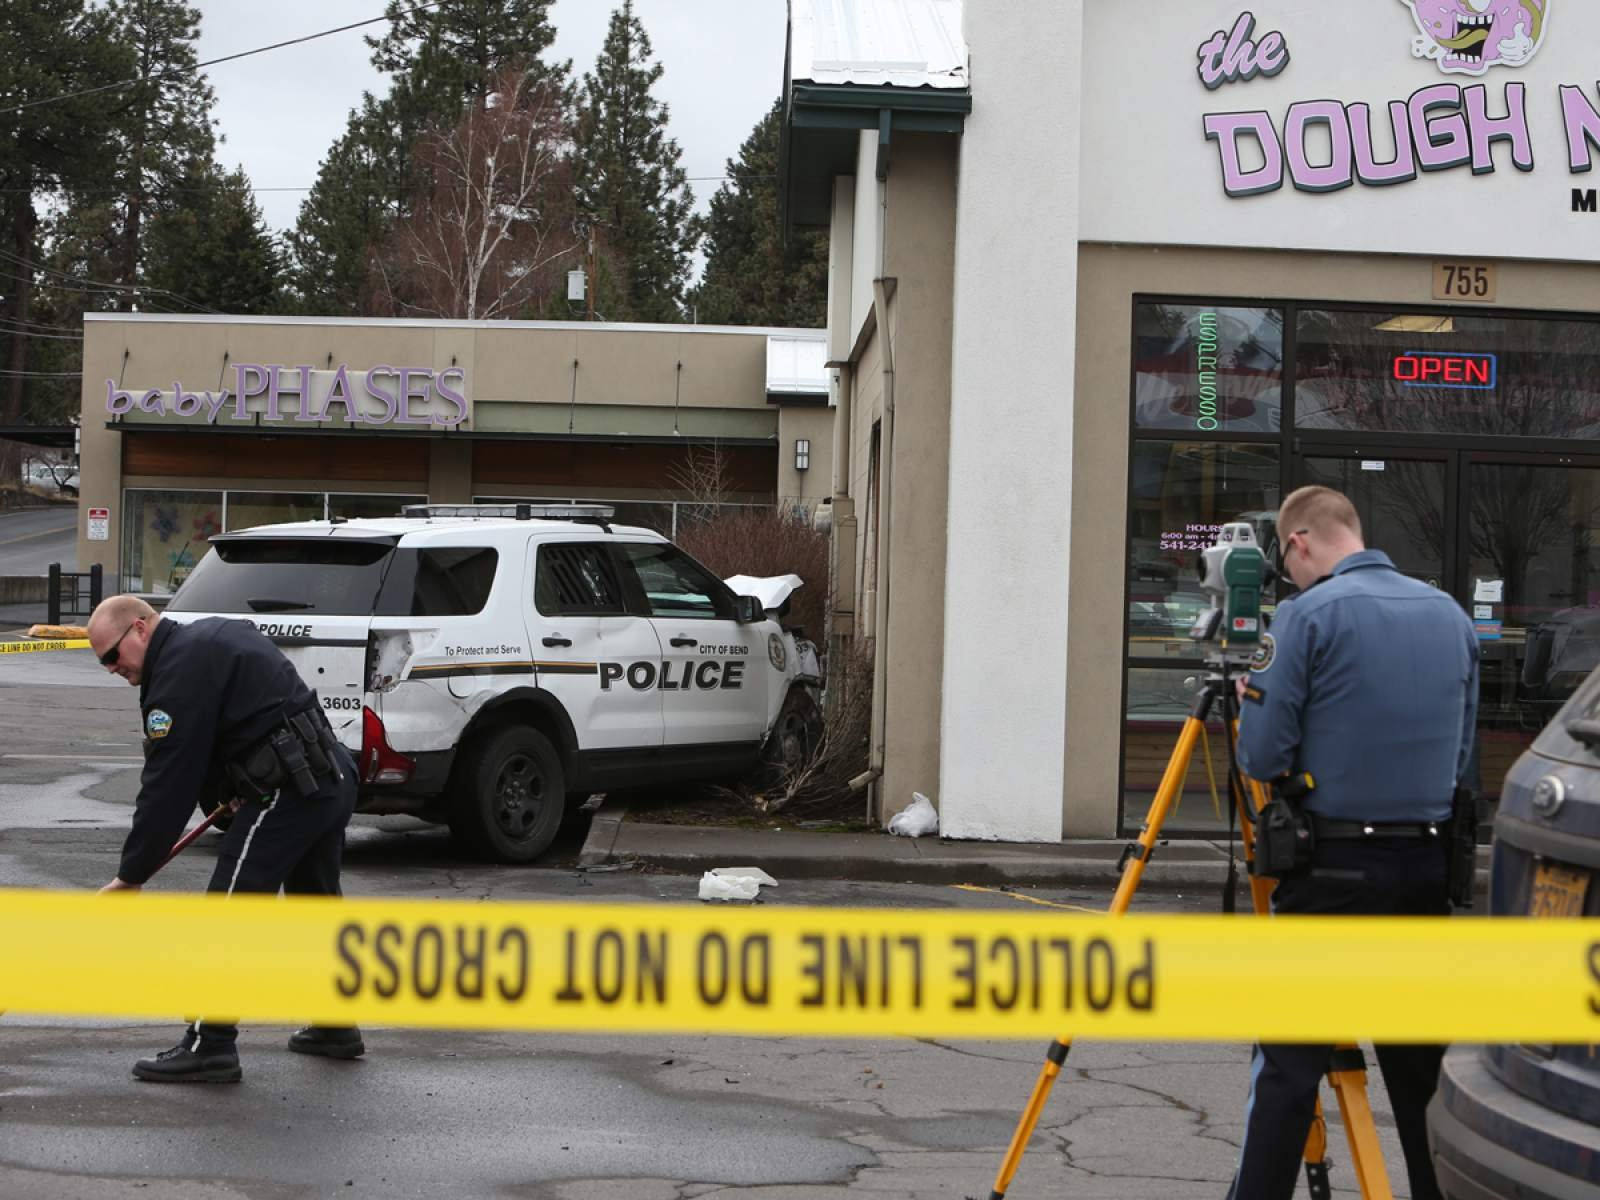 Officers work on the scene of an accident where a Bend PD SUV struck the Dough Nut Midtown shop at NE Eighth St. and Greenwood Ave. early Saturday. The officer driving the SUV was responding to a call, according to Bend Police. (Andy Tullis, The Bulletin)